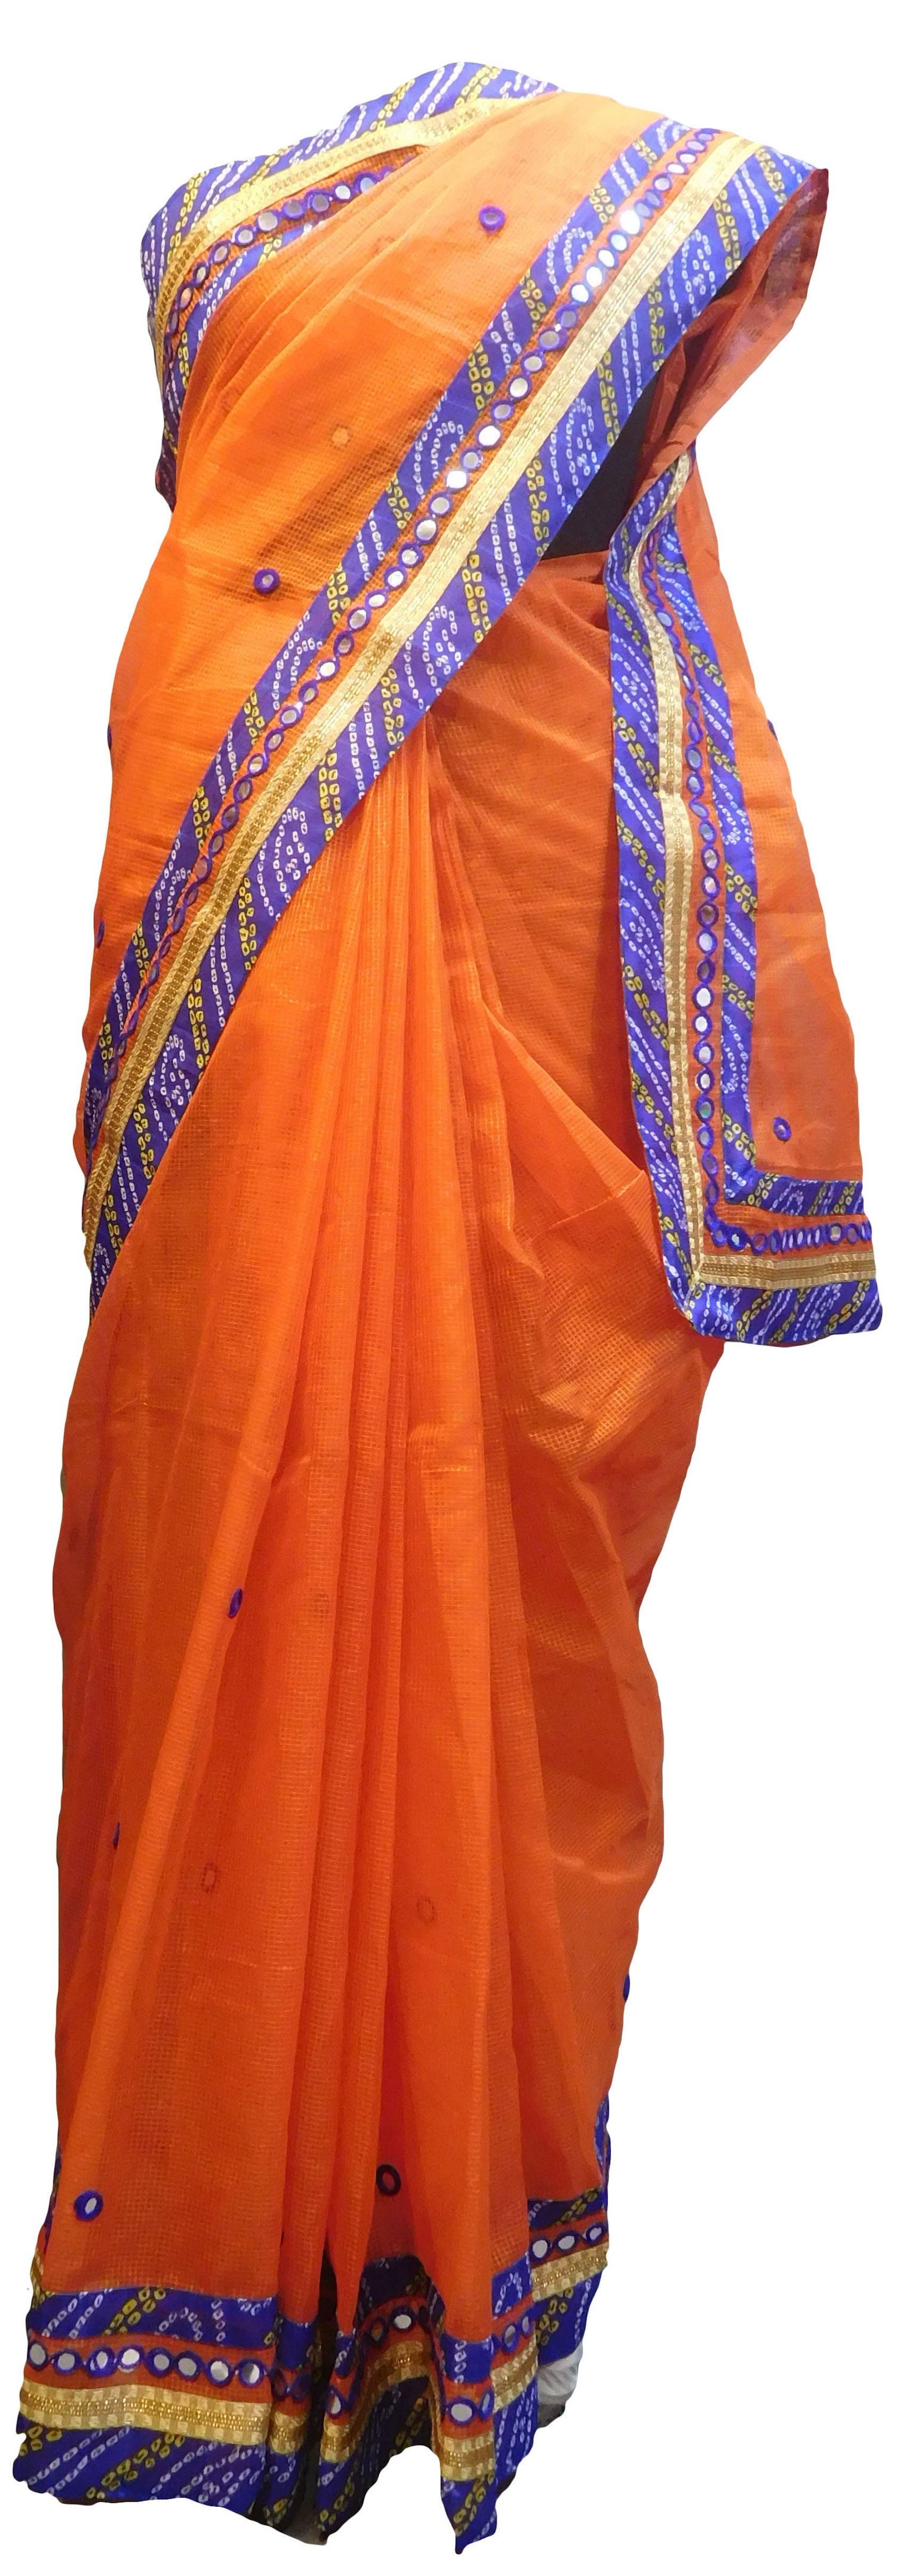 SMSAREE Orange Designer Wedding Partywear Supernet (Cotton) Thread Mirror & Zari Hand Embroidery Work Bridal Saree Sari With Blouse Piece E649